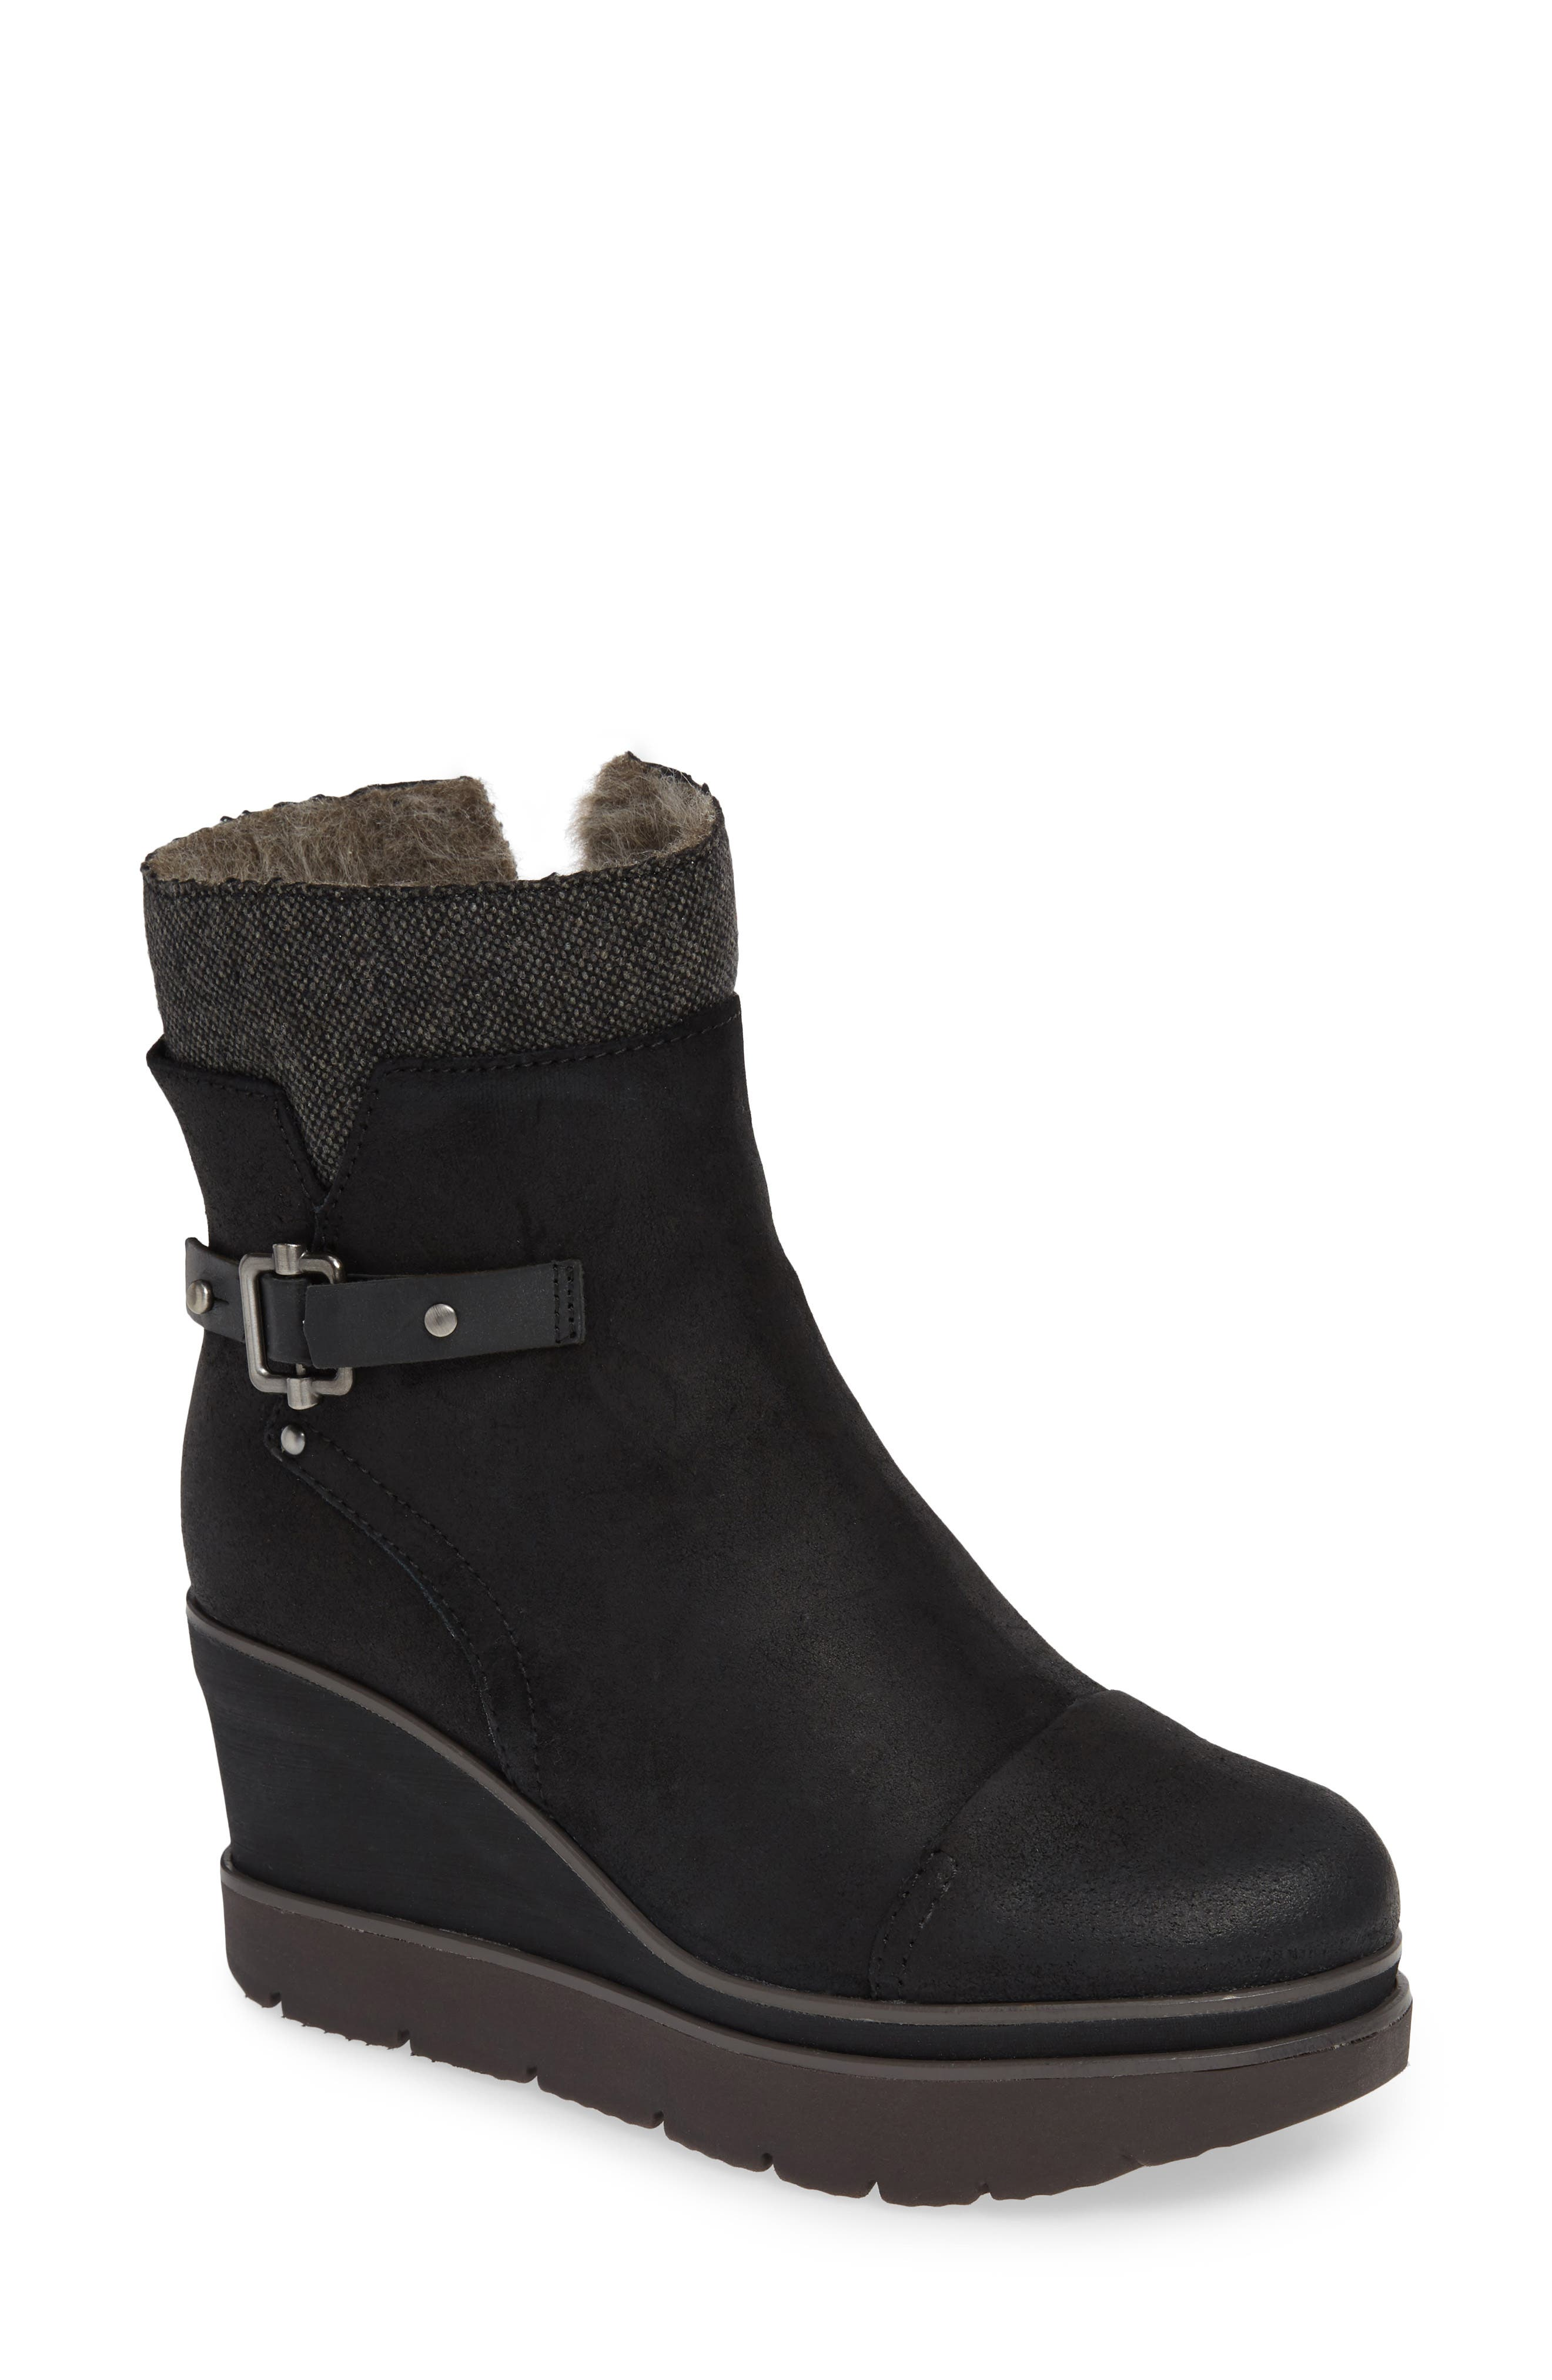 Otbt Descend Bootie- Black